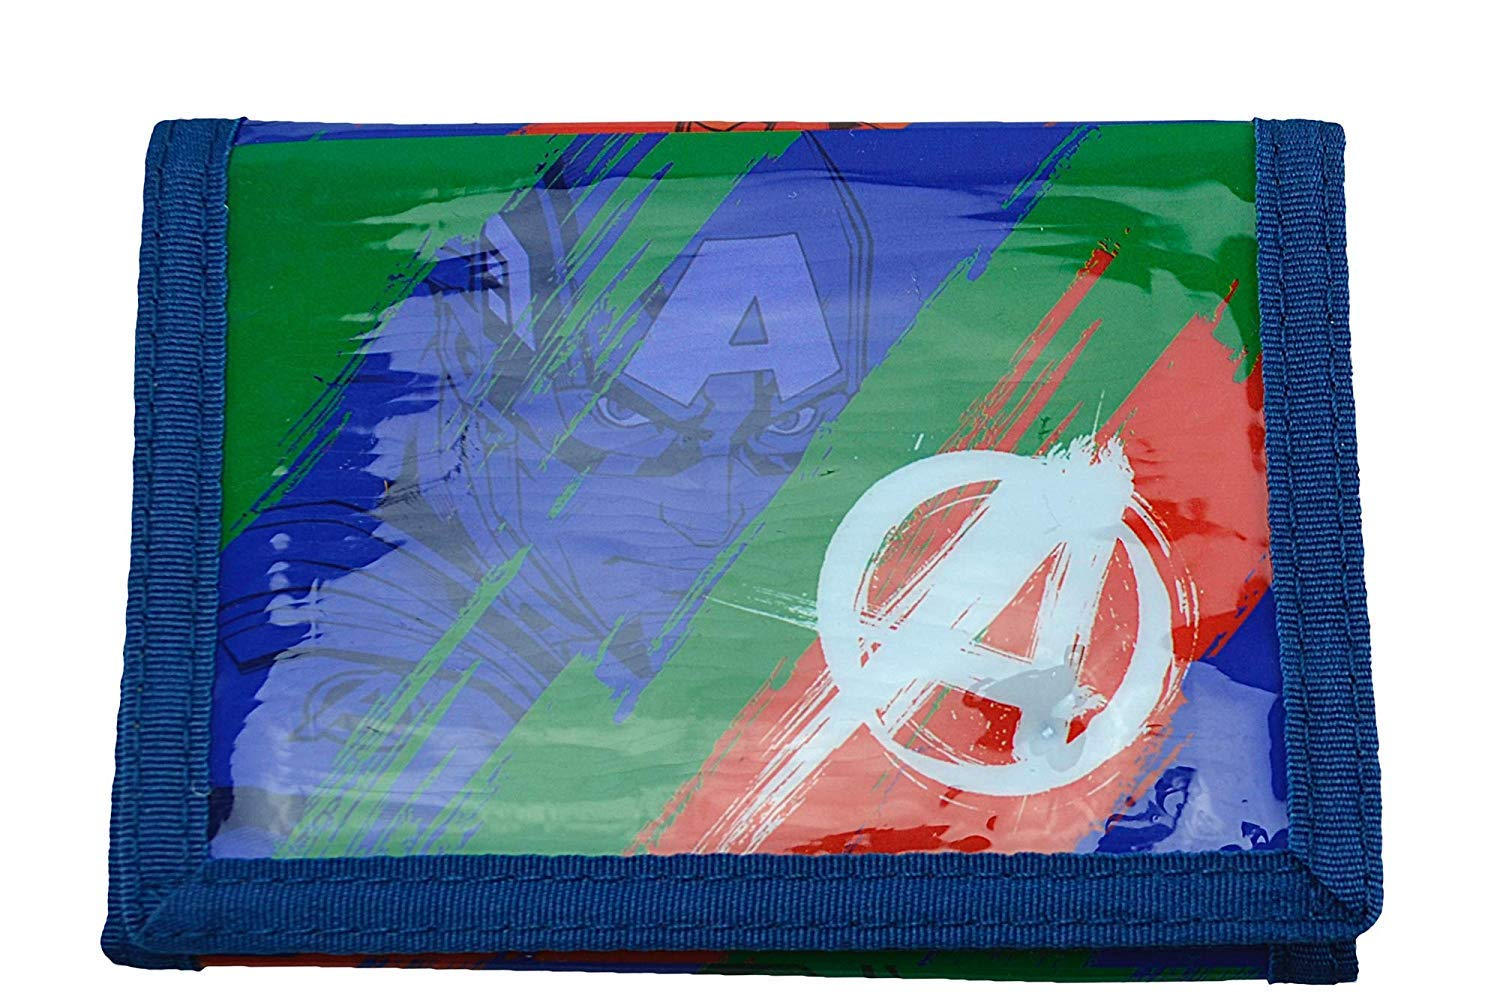 Marvel: Avengers Wallett Porte-Monnaie, 13 cm, 234 liters, Vert (Blue)